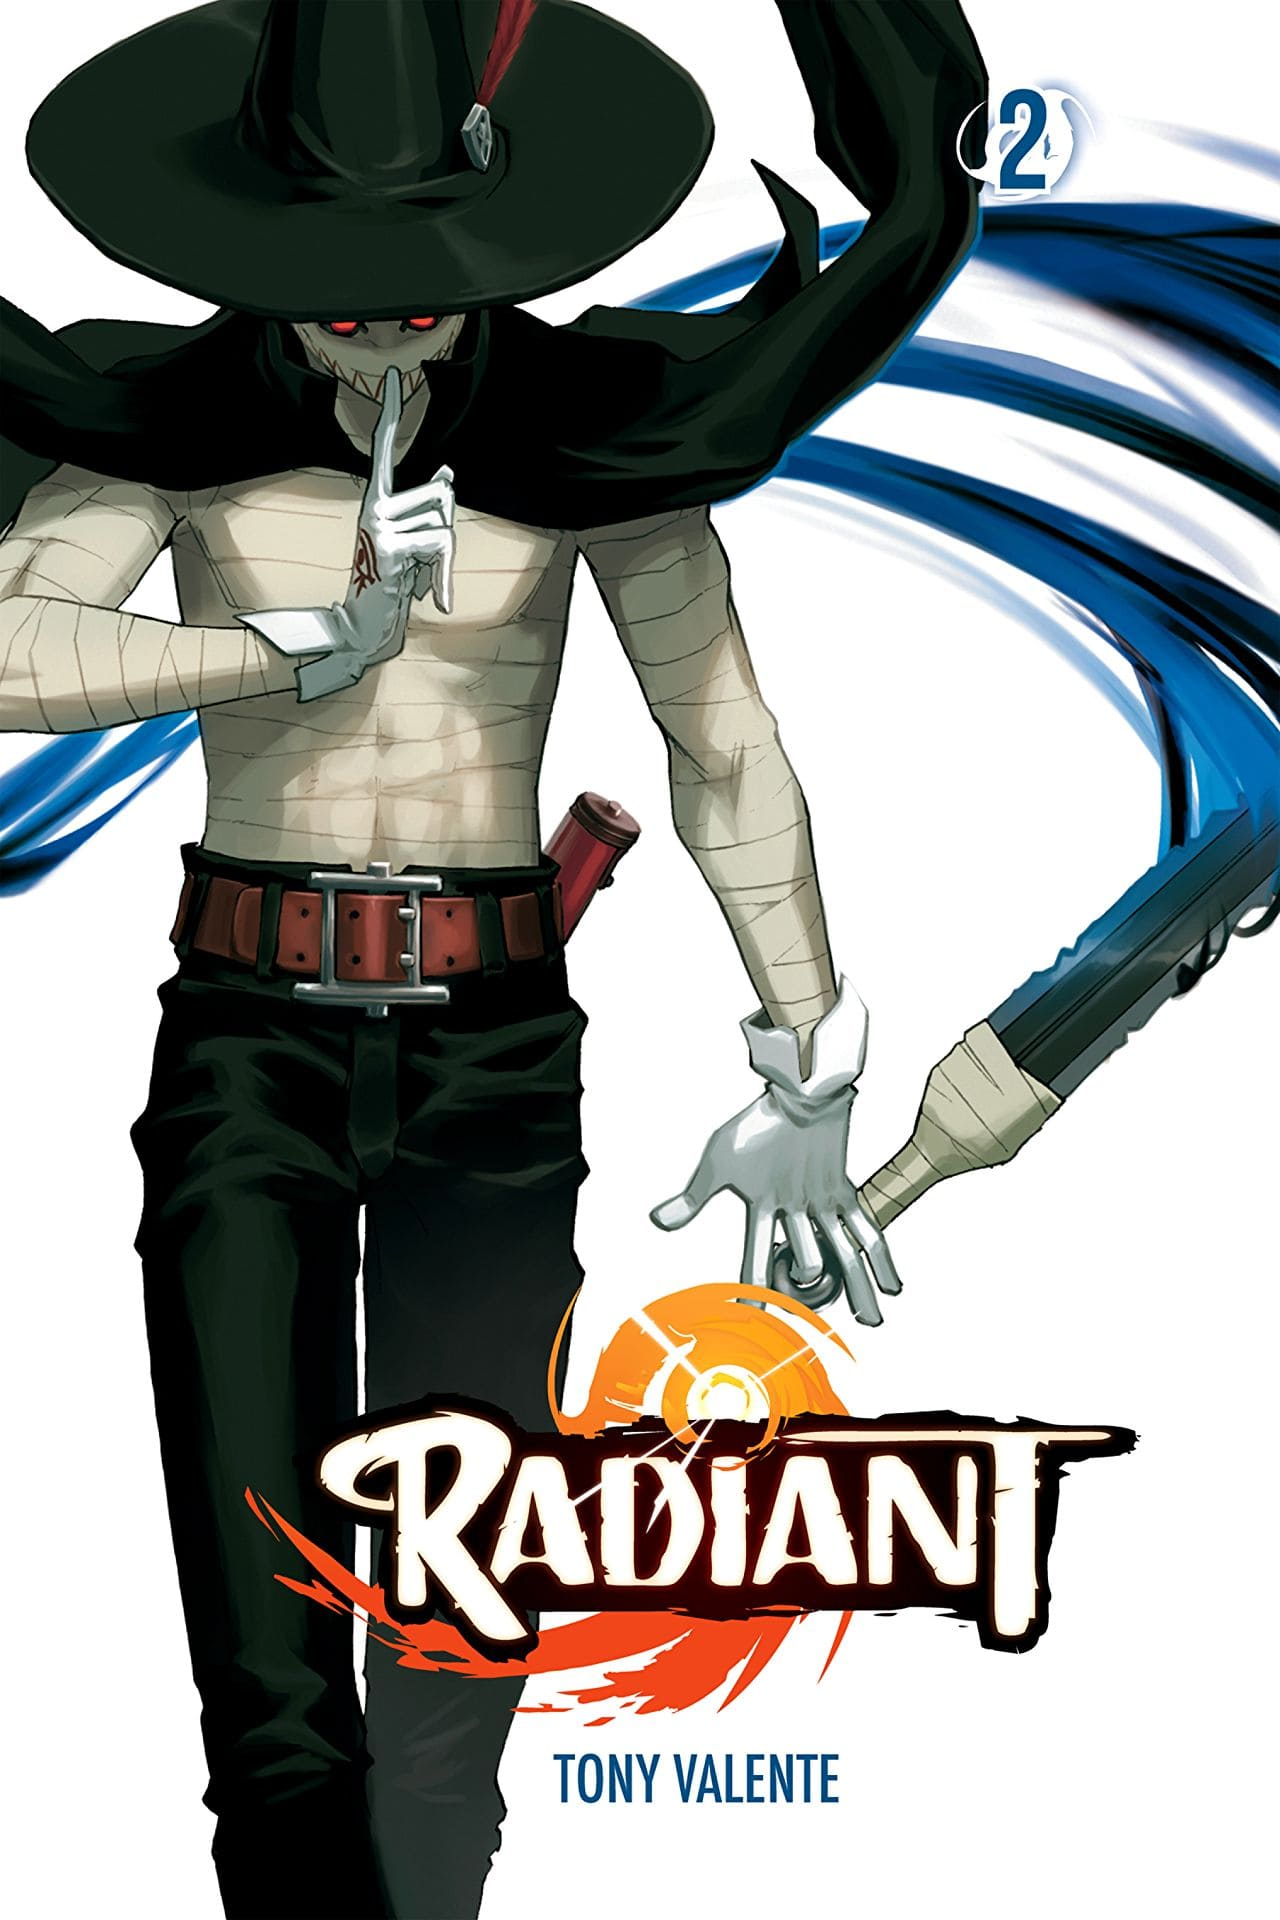 Radiant Vol. 2 Review: Of monsters and magic